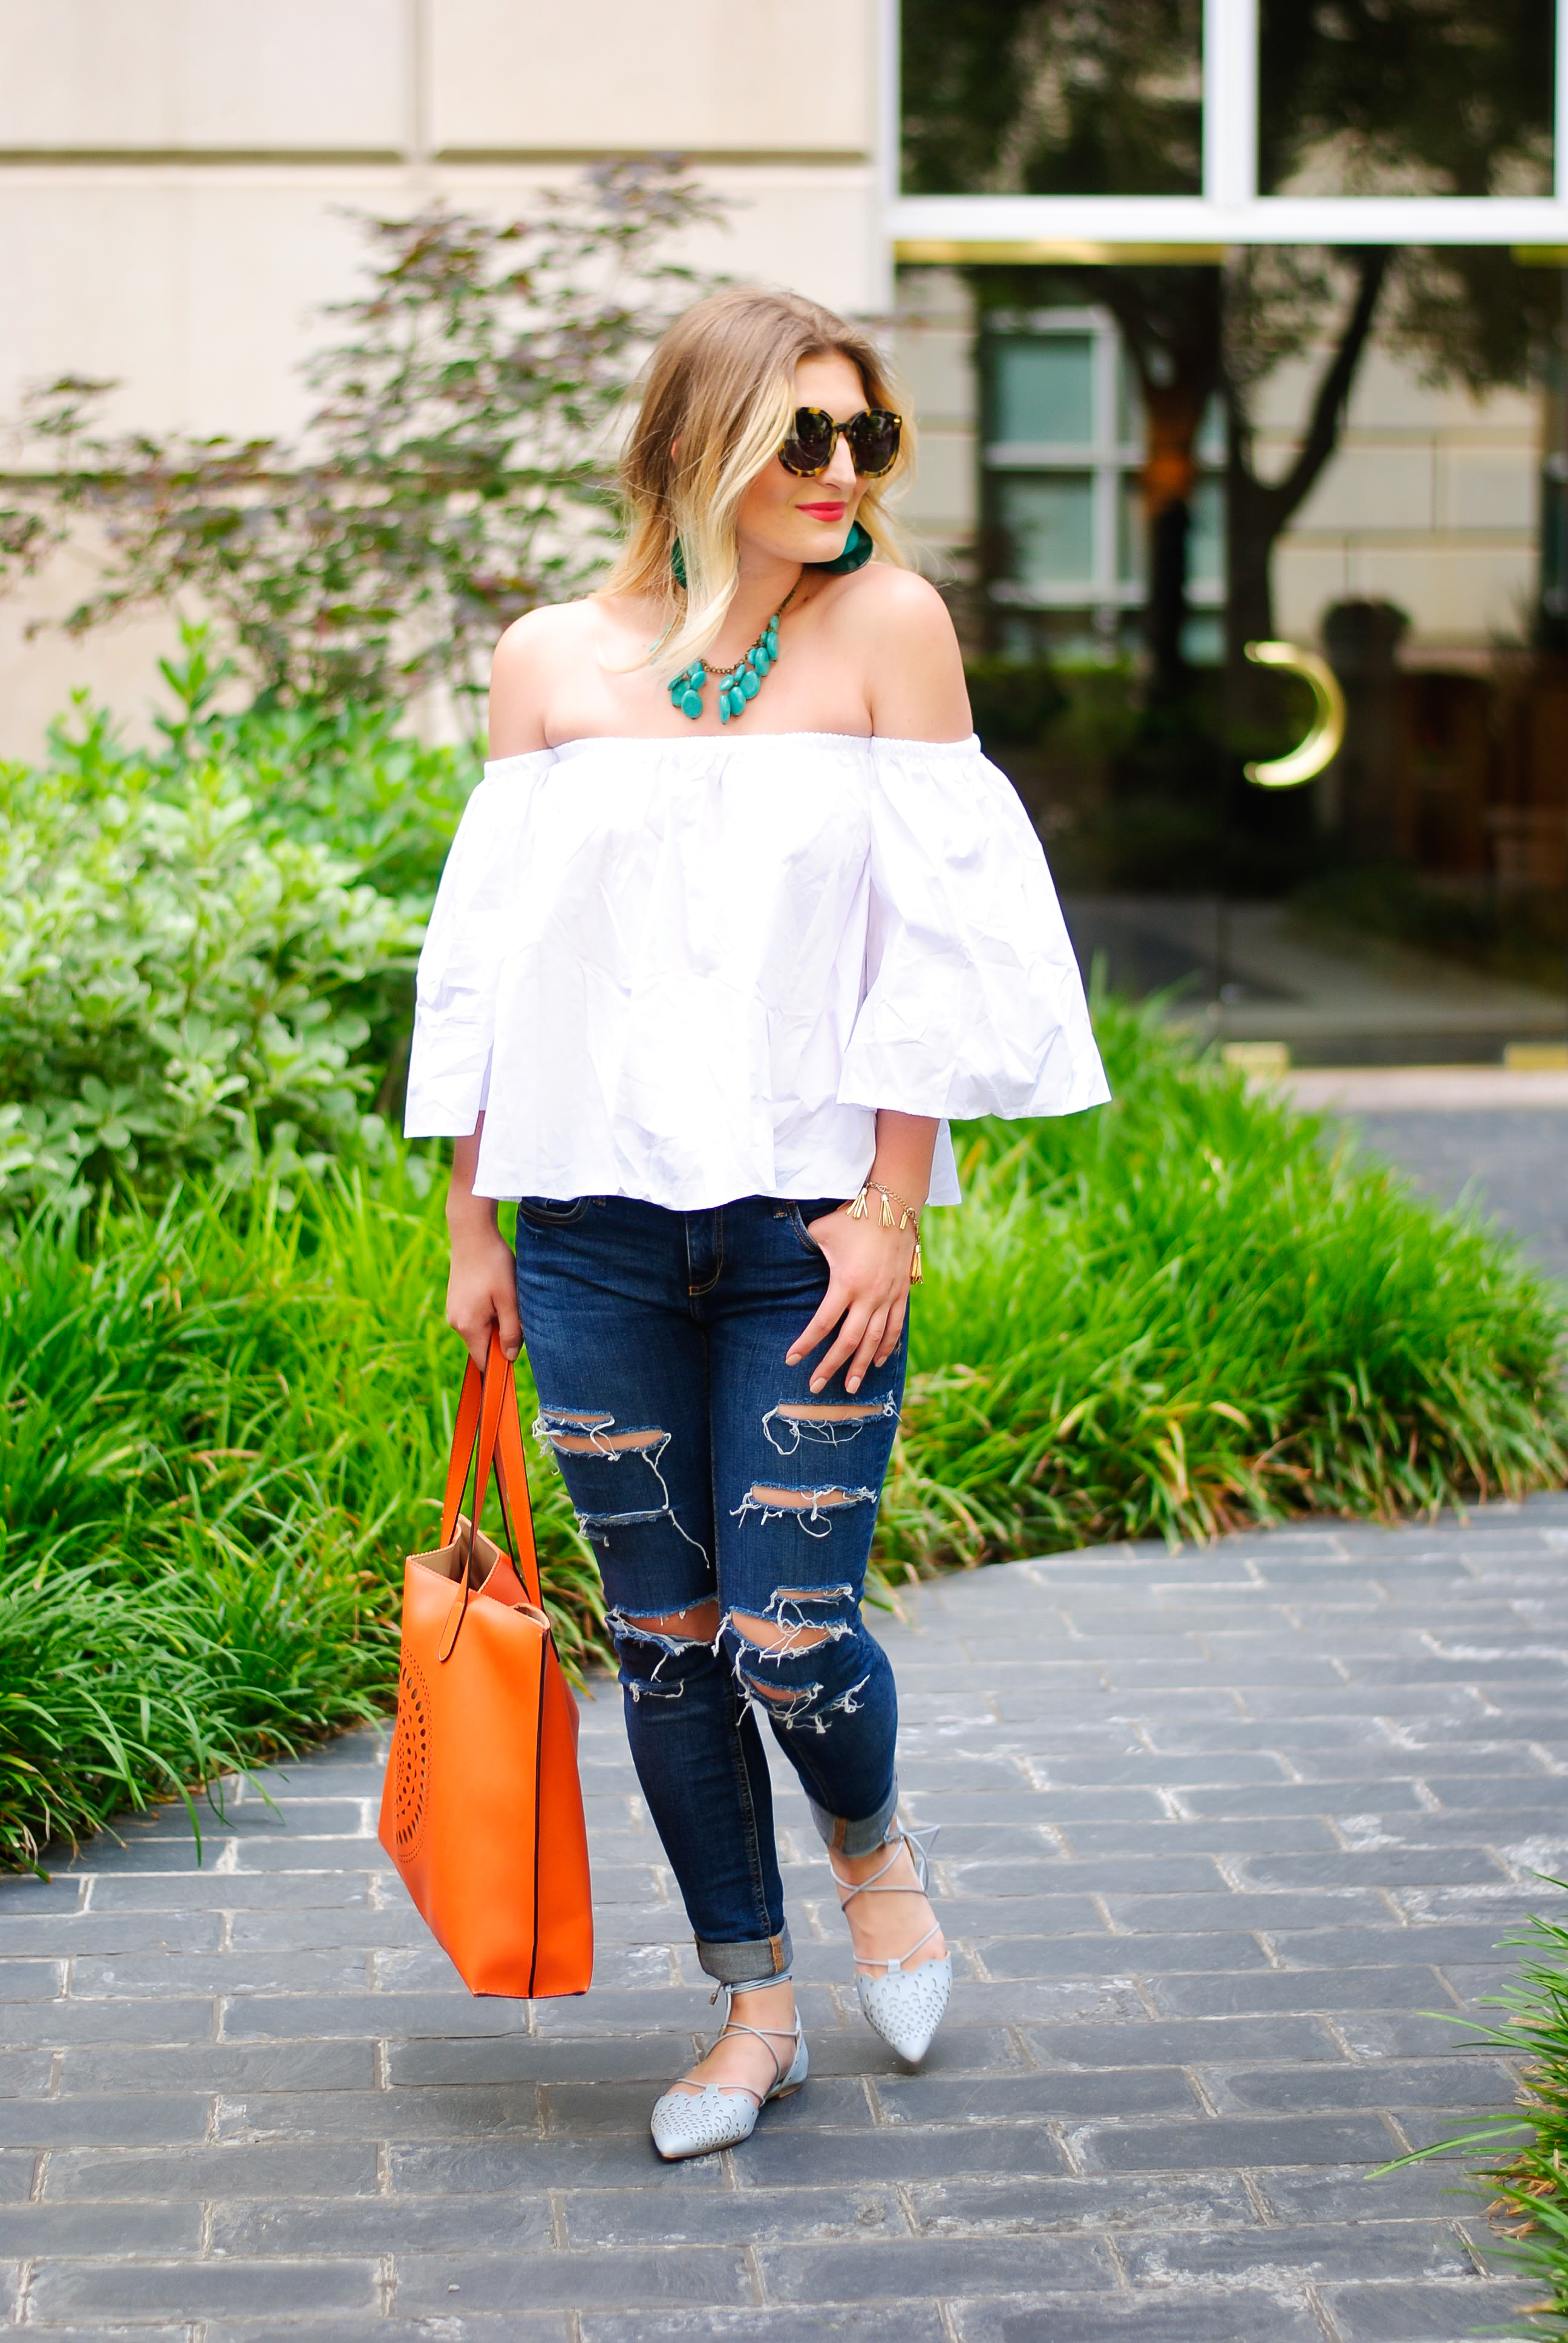 white Romwe top with blue accessories | Audrey Madison Stowe Blog